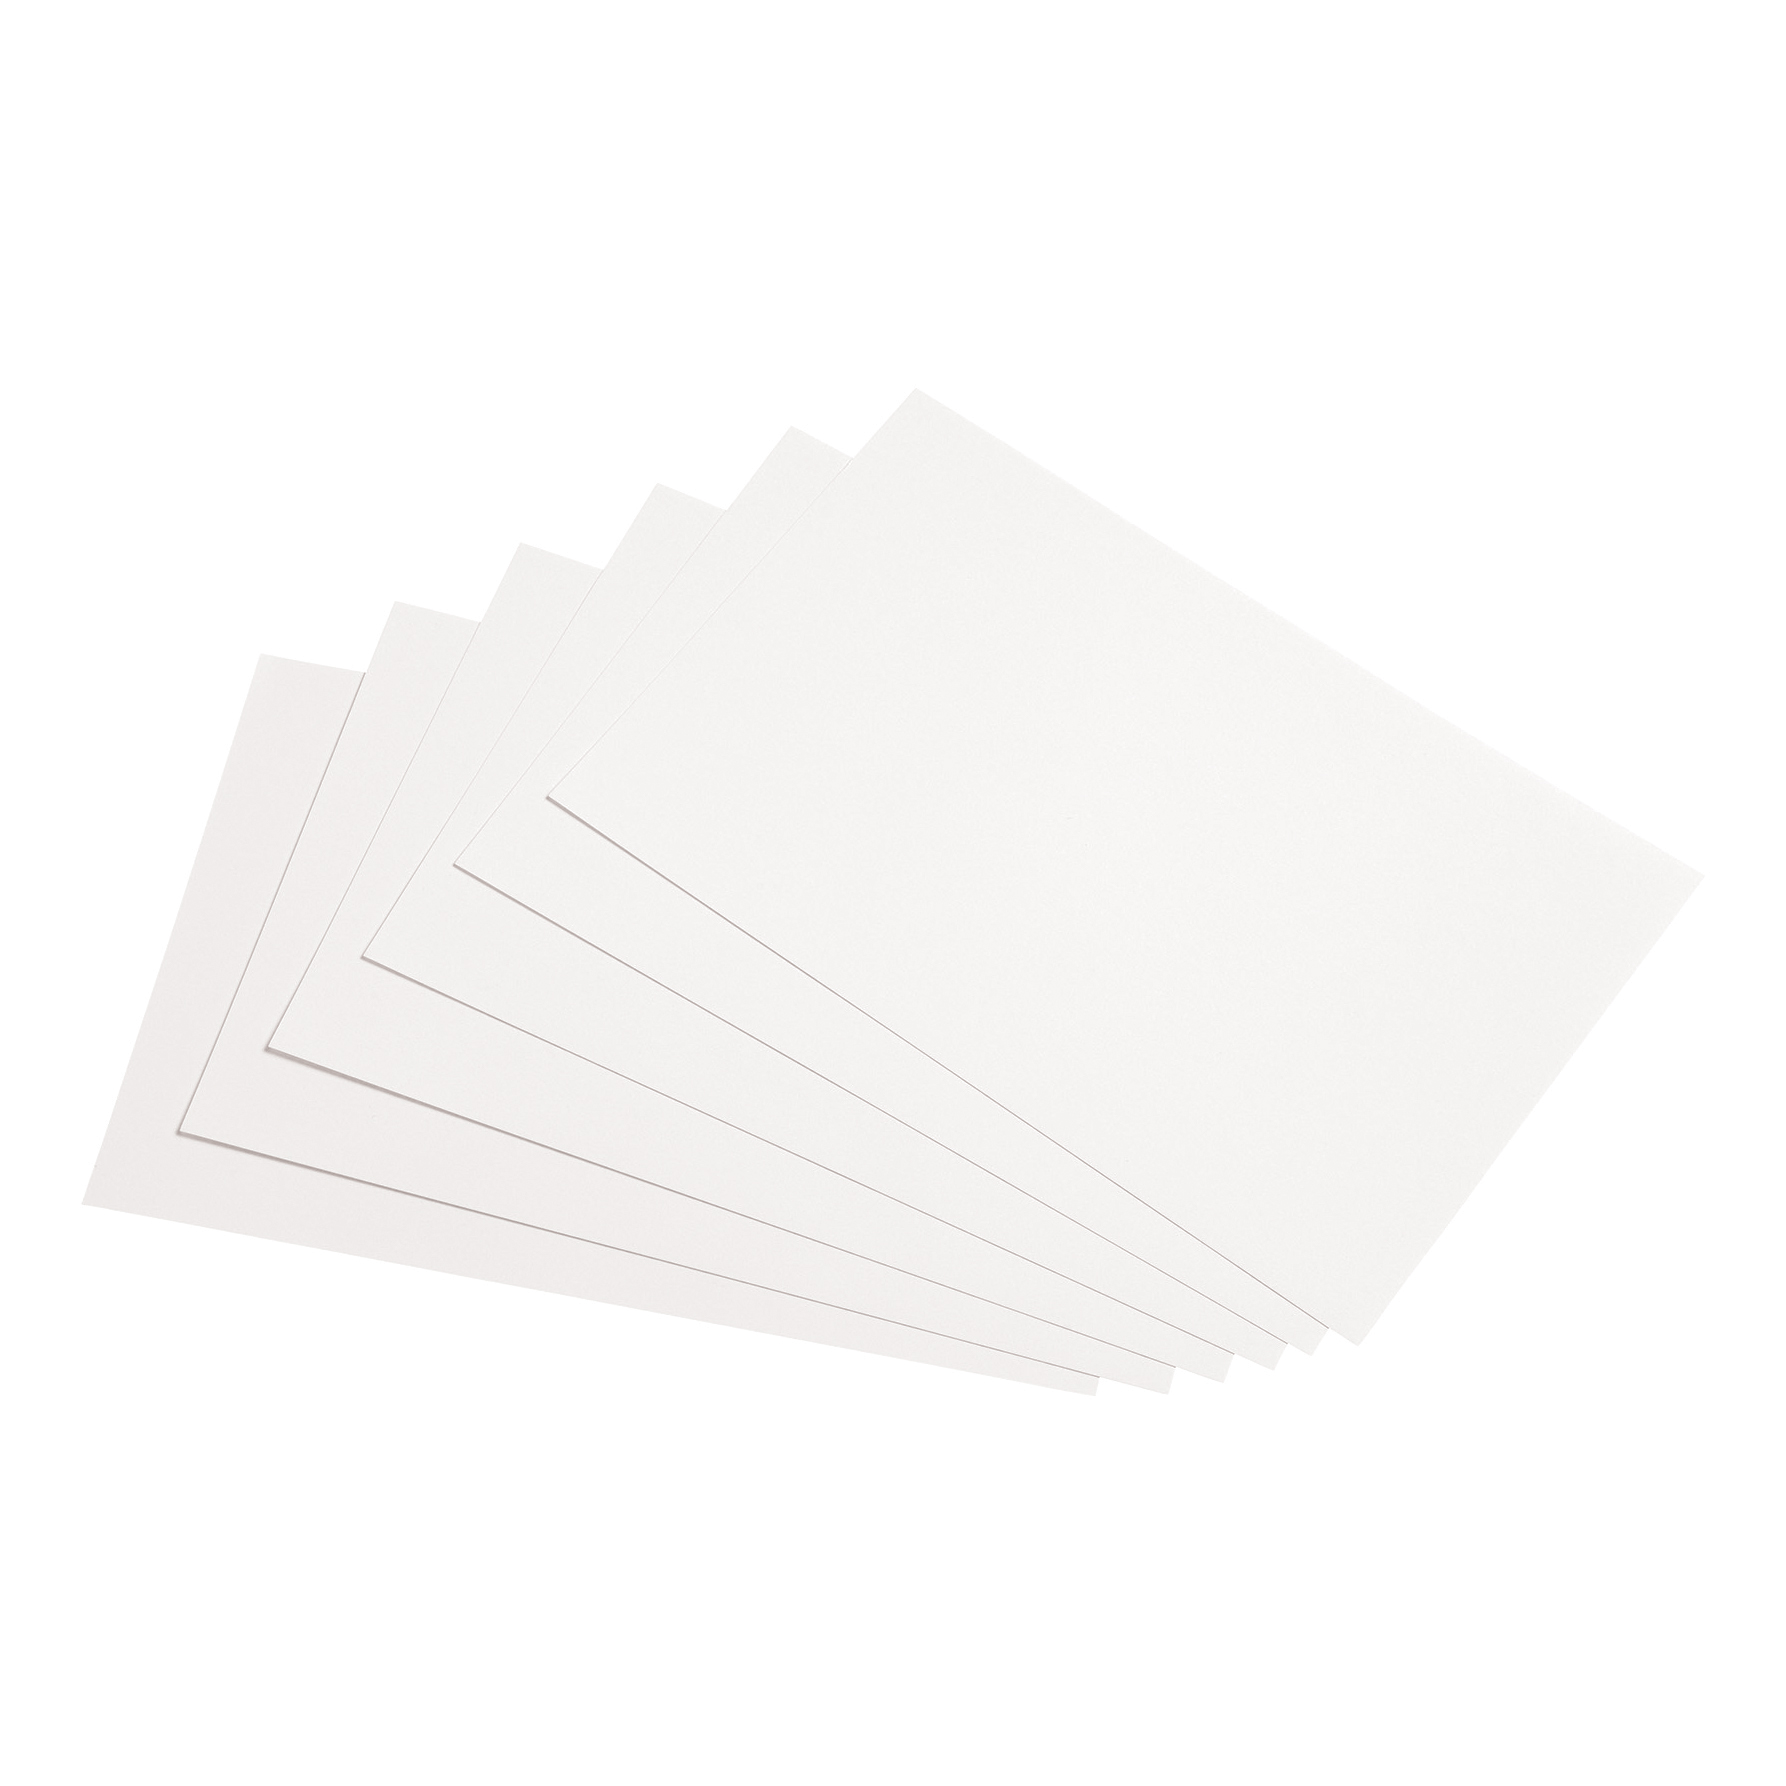 5 Star Office Record Cards Blank 8x5in 203x127mm White [Pack 100]